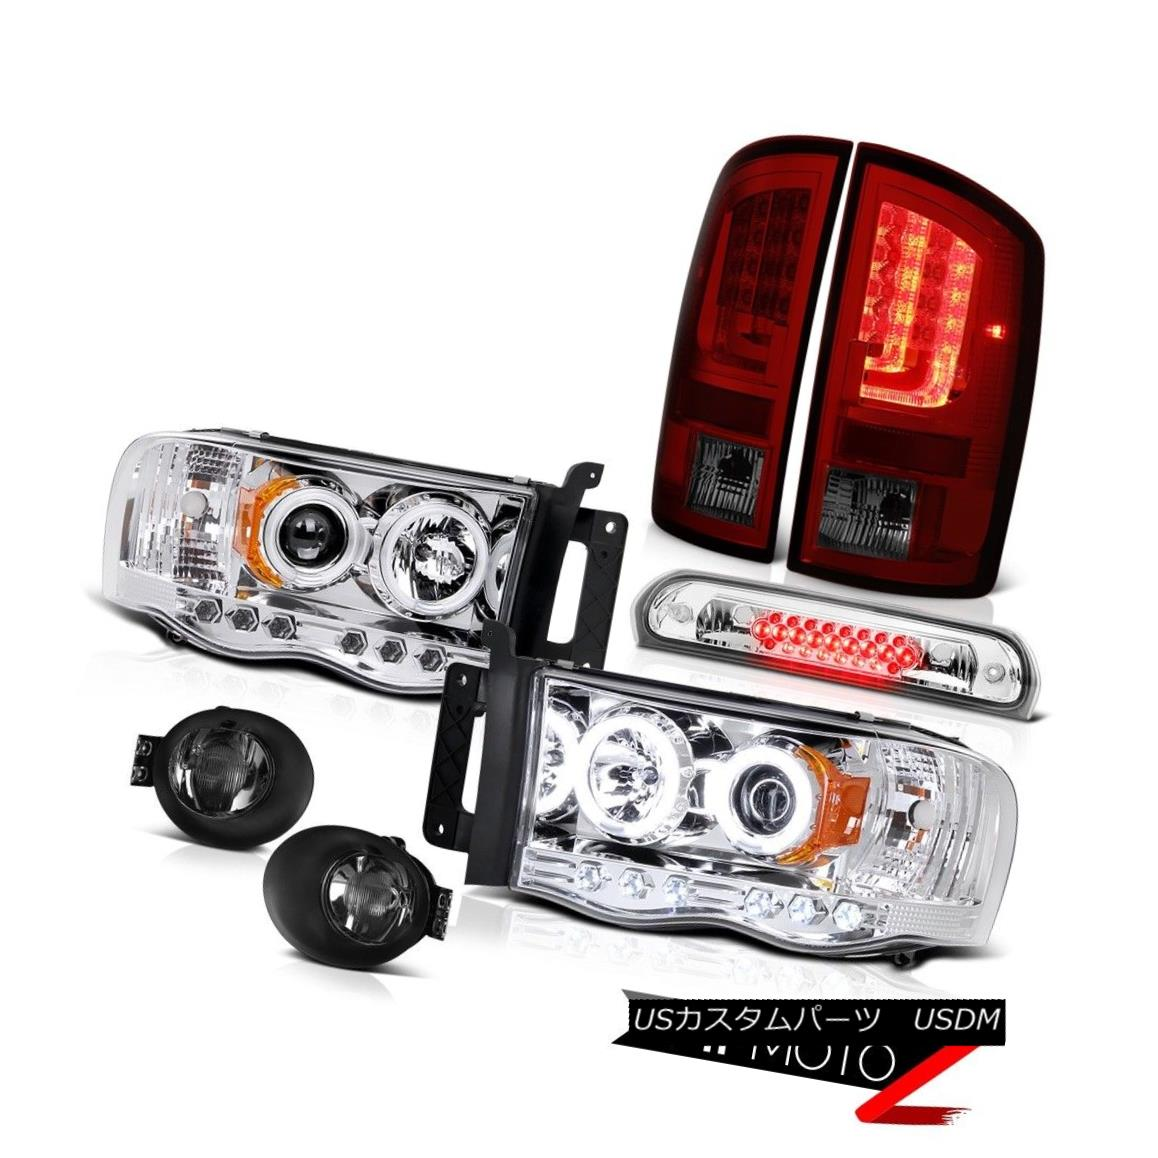 テールライト 2003-2005 Dodge Ram 2500 5.7L Tail Brake Lamps Fog Headlamps 3RD Lamp LED Cool 2003-2005 Dodge Ram 2500 5.7Lテール・ブレーキ・ランプフォグ・ヘッドランプ3RDランプLED Cool